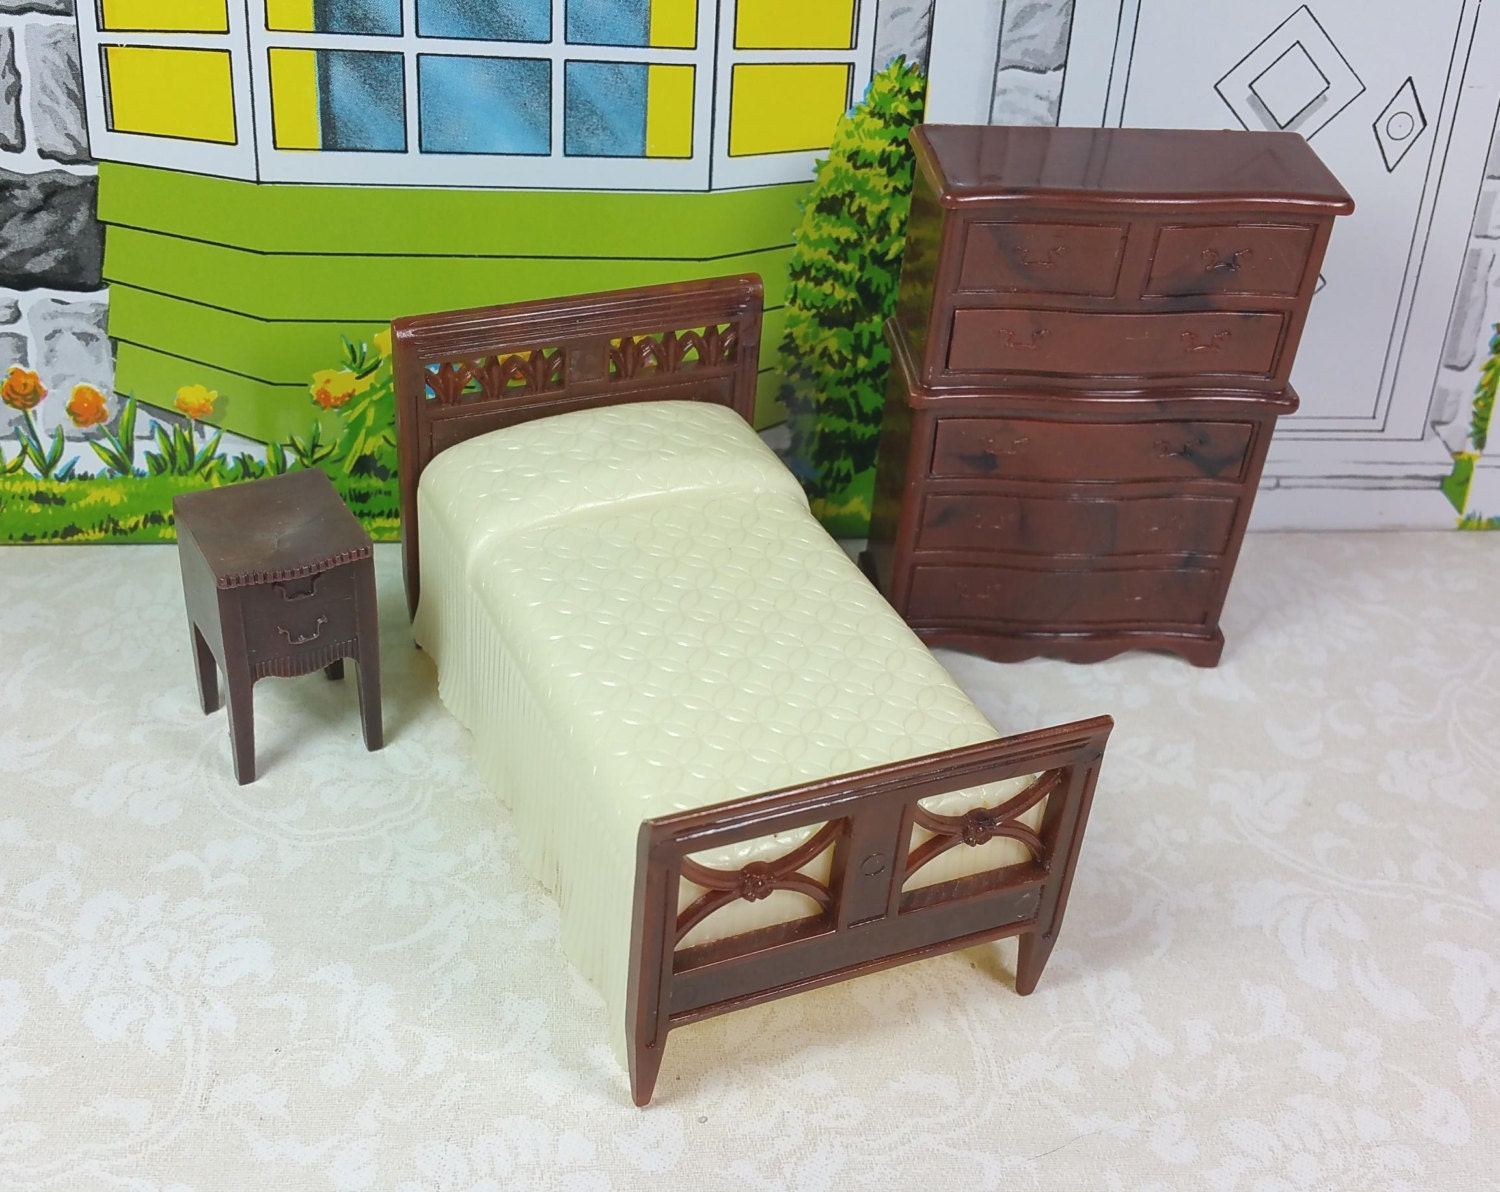 Renwal bedroom set 1950 s marked hard plastic 3 4 scale vintage metal dollhouse furniture Plastic bedroom furniture